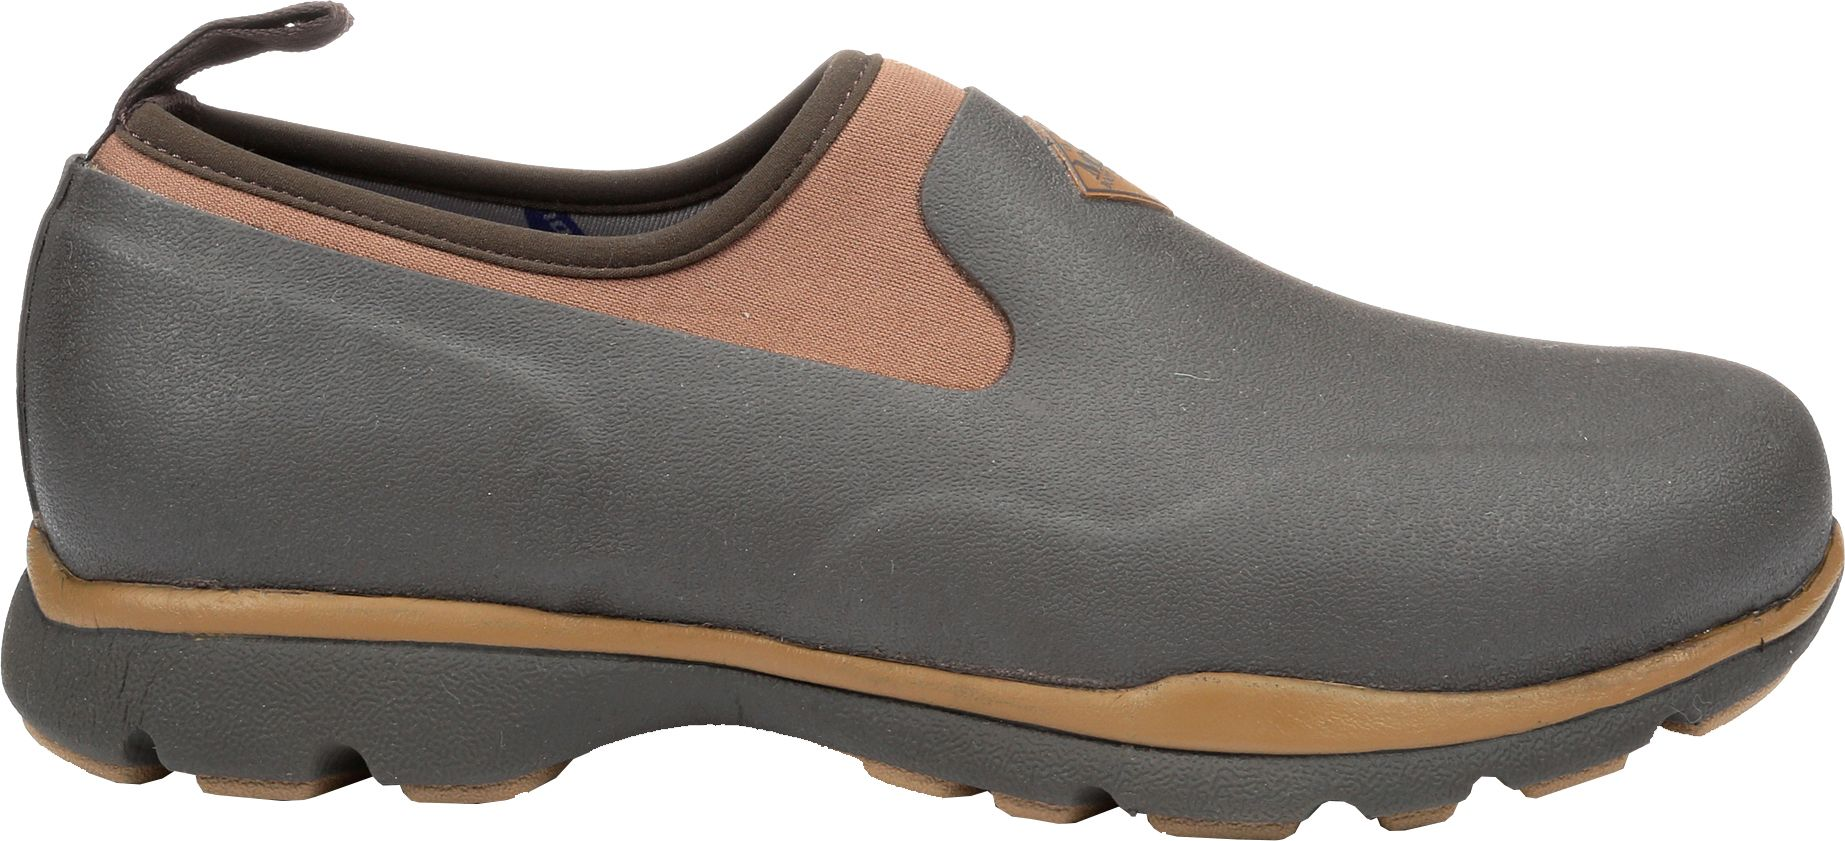 Muck Boots Men's Excursion Pro Low Waterproof Rubber Hunting Shoes   DICK'S  Sporting Goods